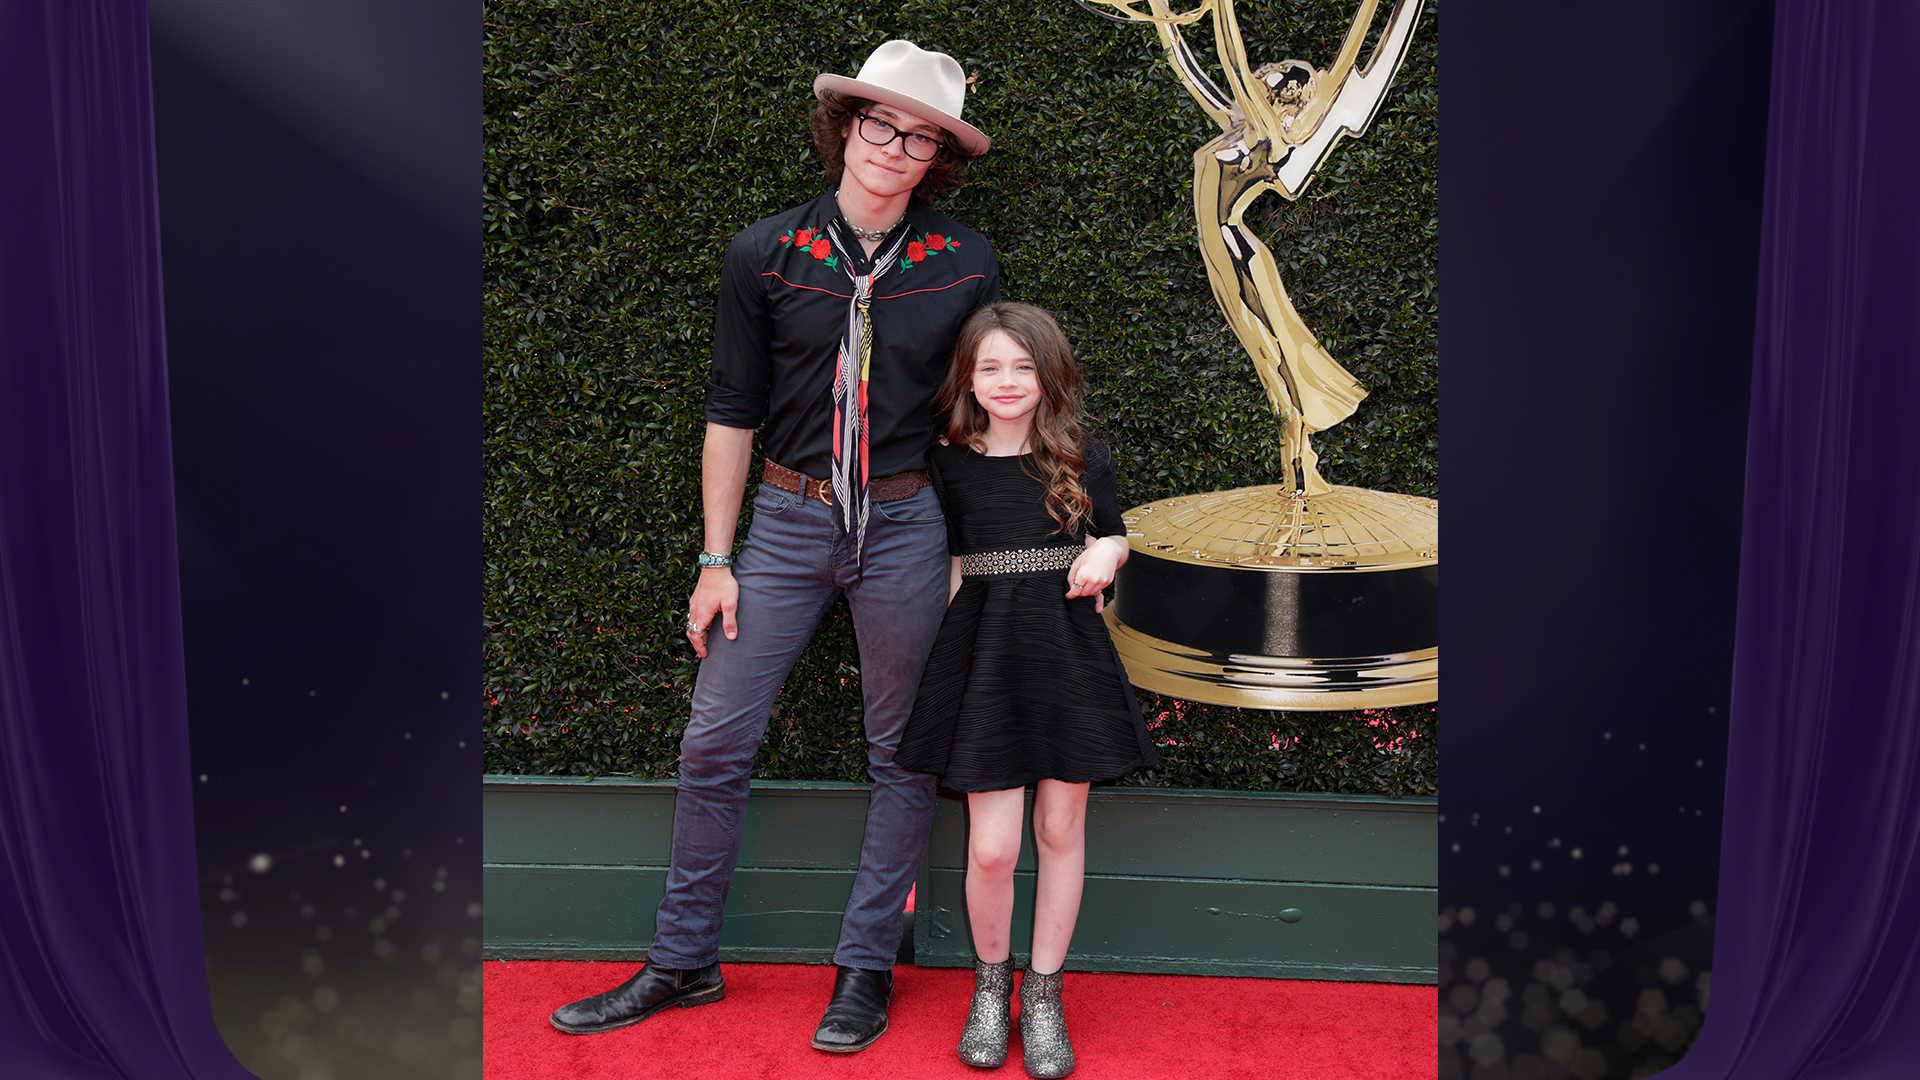 Standing alongside his little sister, Y&R star Tristan Lake Leabu, who's nominated for Outstanding Younger Actor in a Drama Series, brings a little country-music swag to the Daytime Emmy Awards red carpet.